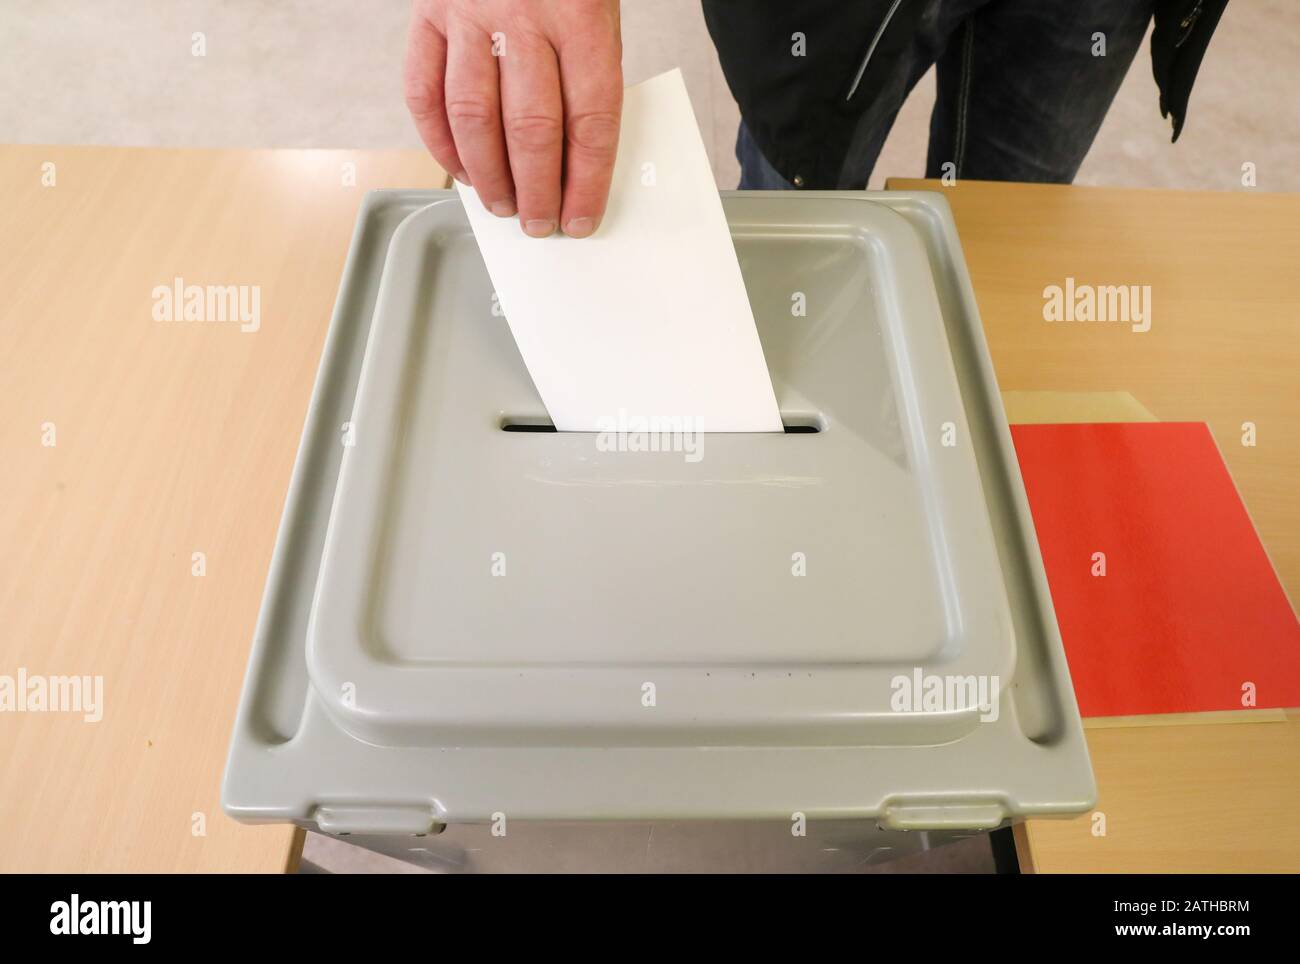 Leipzig, Germany. 02nd Feb, 2020. A man from Leipzig throws his ballot paper for the mayoral election into the ballot box. About 470,000 Leipzig citizens have been able to elect their mayor for the next seven years since eight o'clock. Incumbent Jung (SPD), who has been head of the city hall since 2006, is running for the third time. The CDU has put Saxony's Minister of Science Gemkow in the race. If none of the candidates receives more than half of the votes in the first ballot, there will be a second ballot on 1 March. Credit: Jan Woitas/dpa-Zentralbild/dpa/Alamy Live News Stock Photo